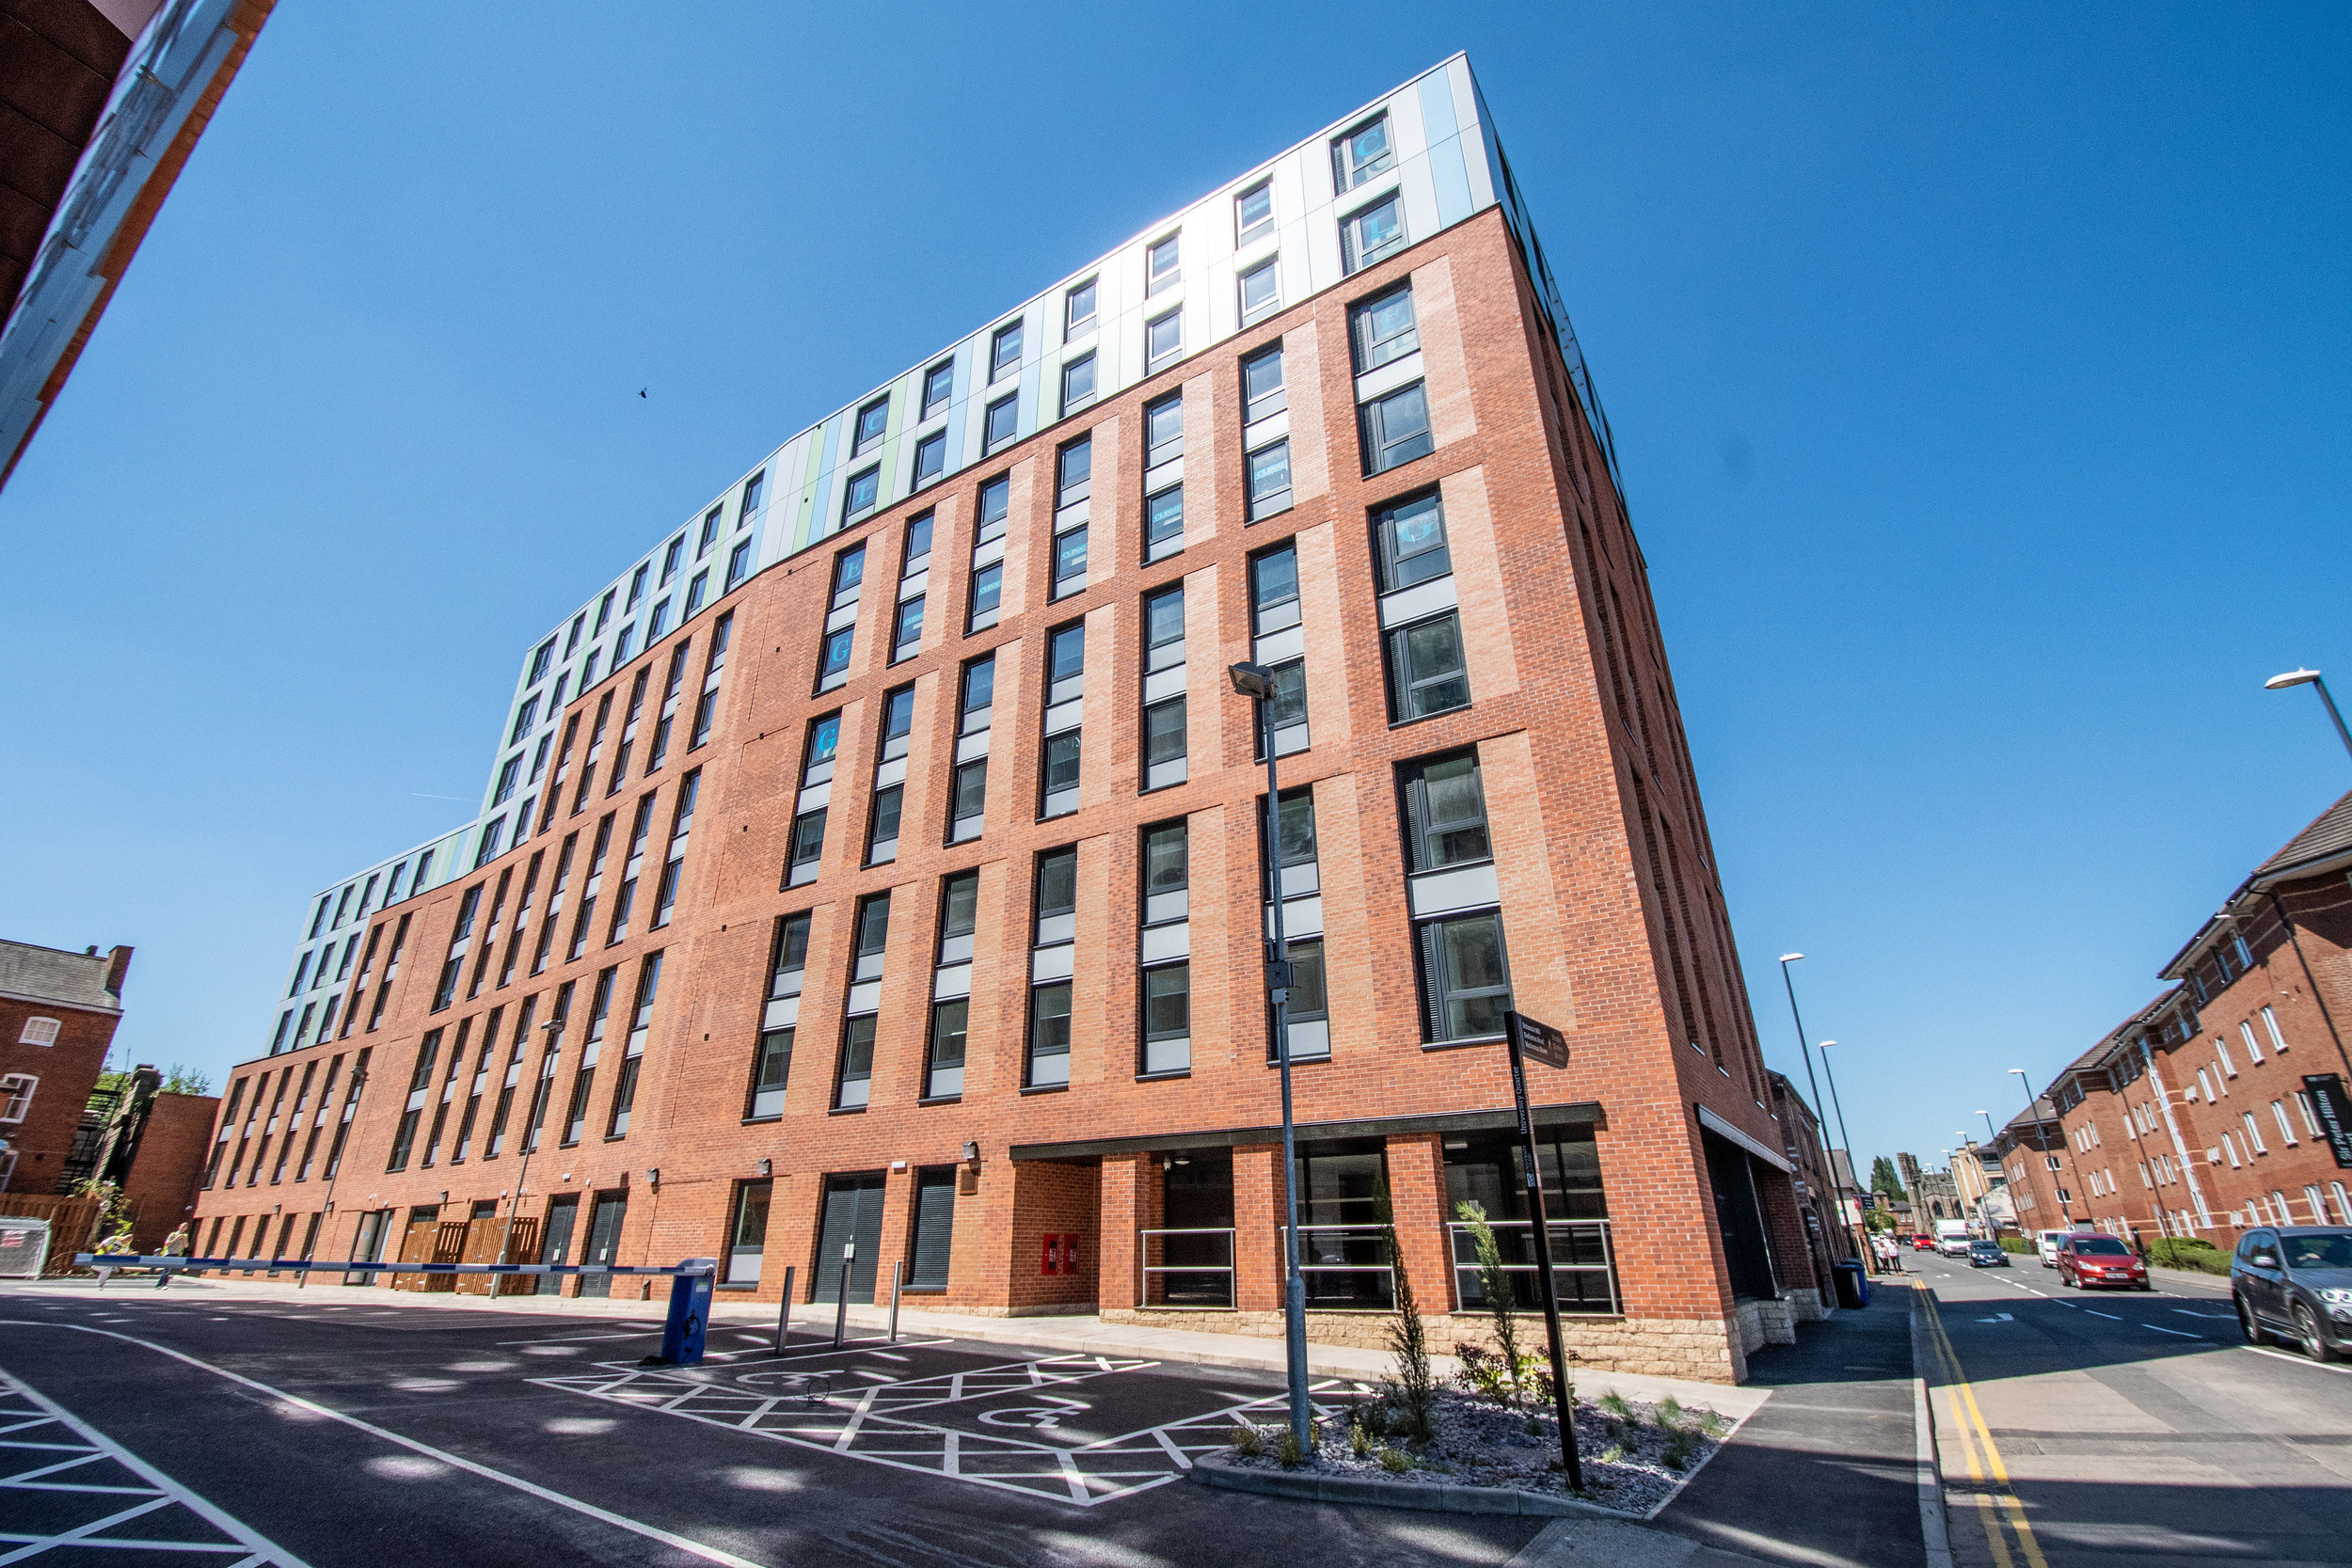 Agard Court, Derby DE1   244 City Centre student residences by Jensco for University of Derby - Occupation 2018